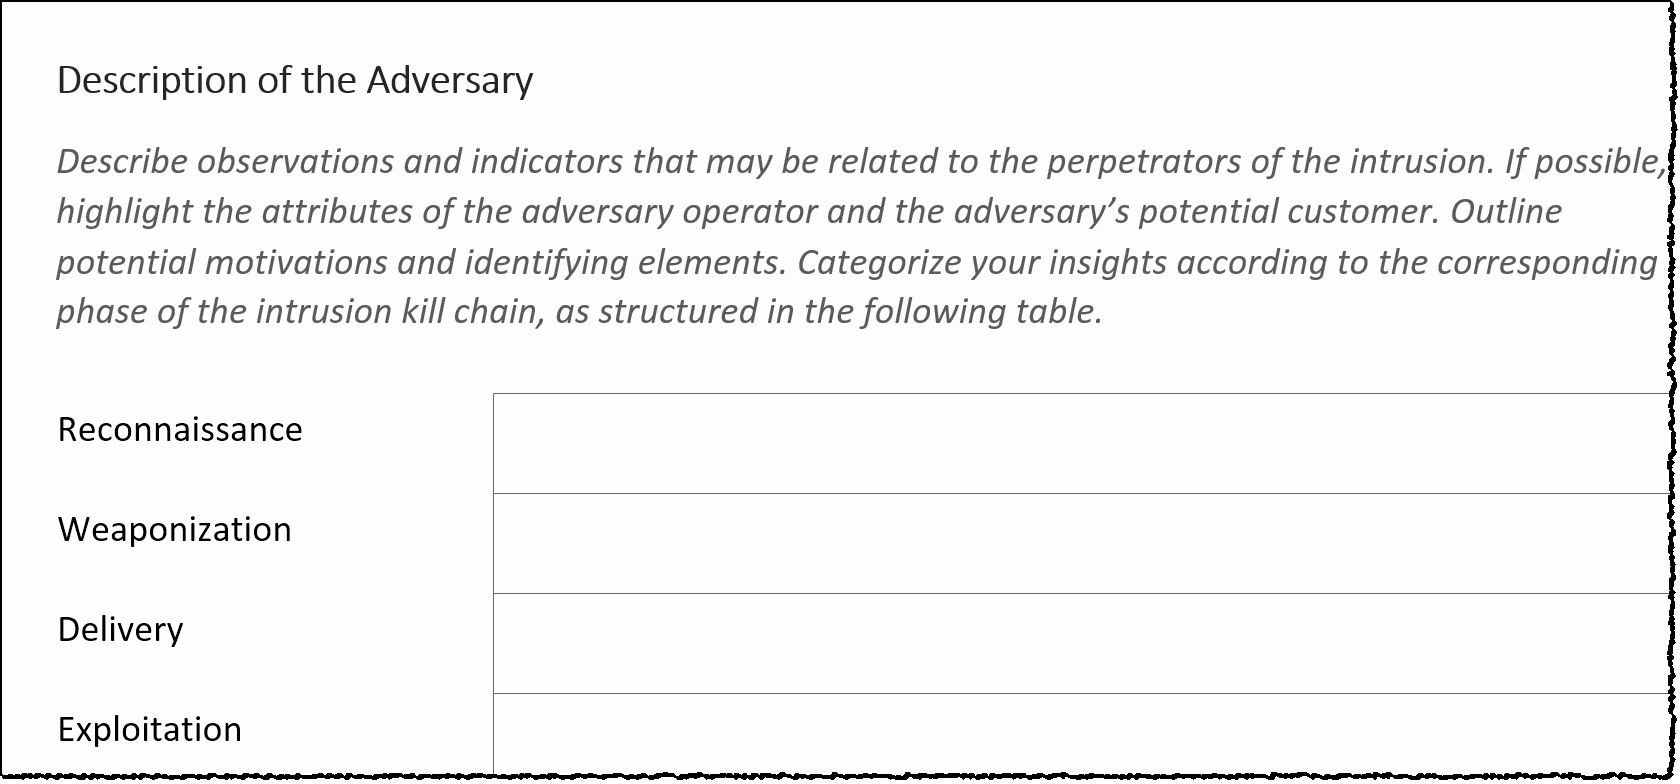 Incident Response Report Template Beautiful Report Template for Threat Intelligence and Incident Response